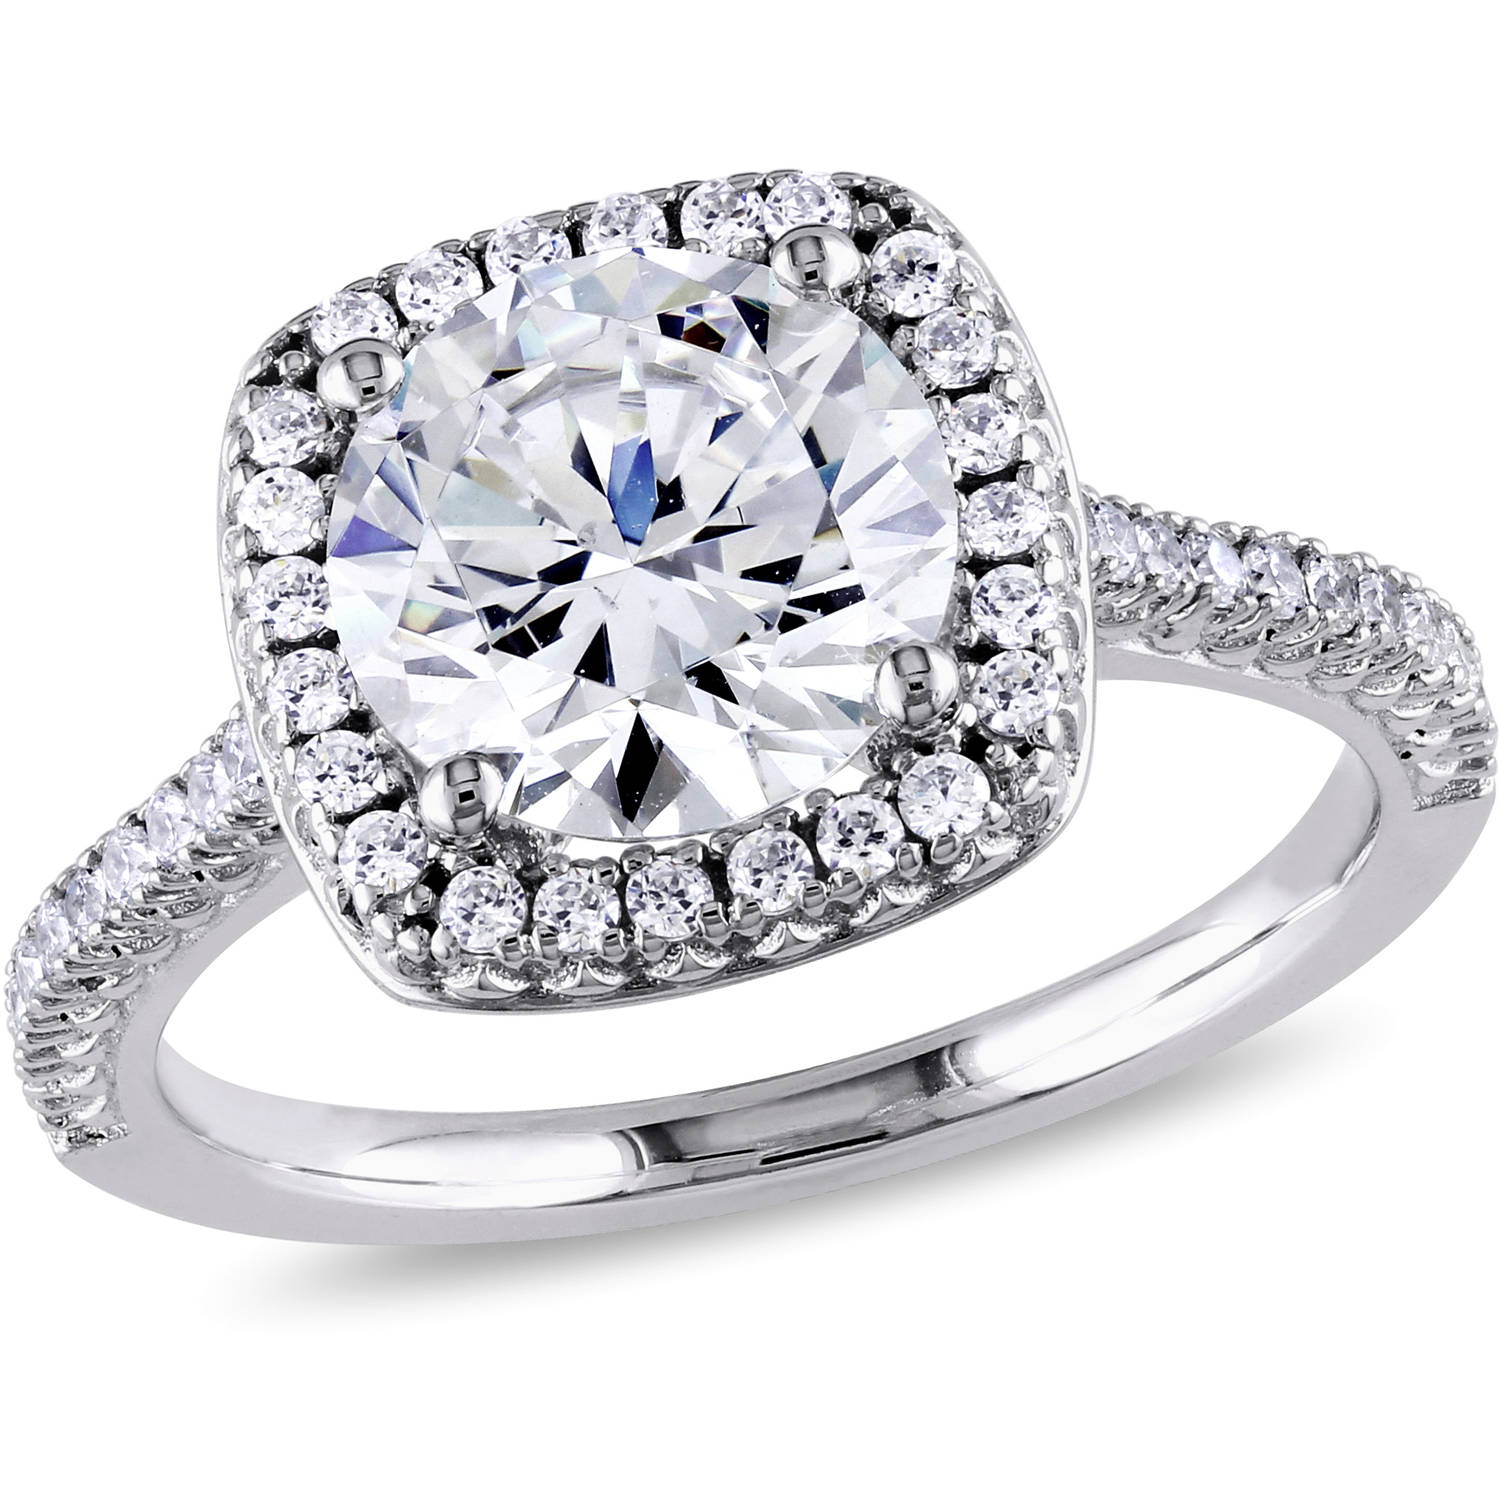 Miabella 5 Carat T.G.W. Cubic Zirconia Sterling Silver Halo Engagement Ring